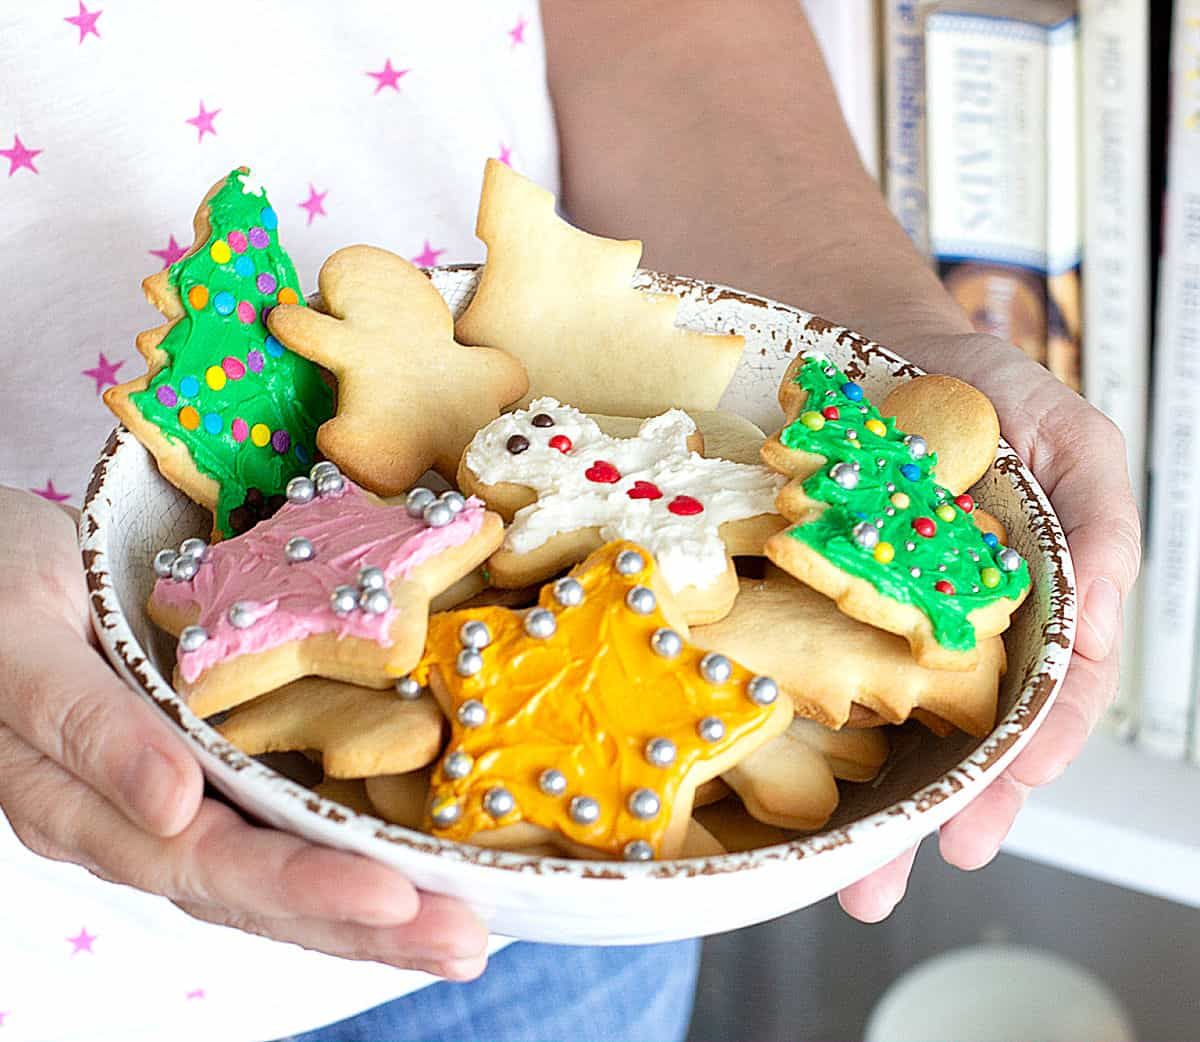 White bowl with frosted sugar cookies held by person with white stars t-shirt